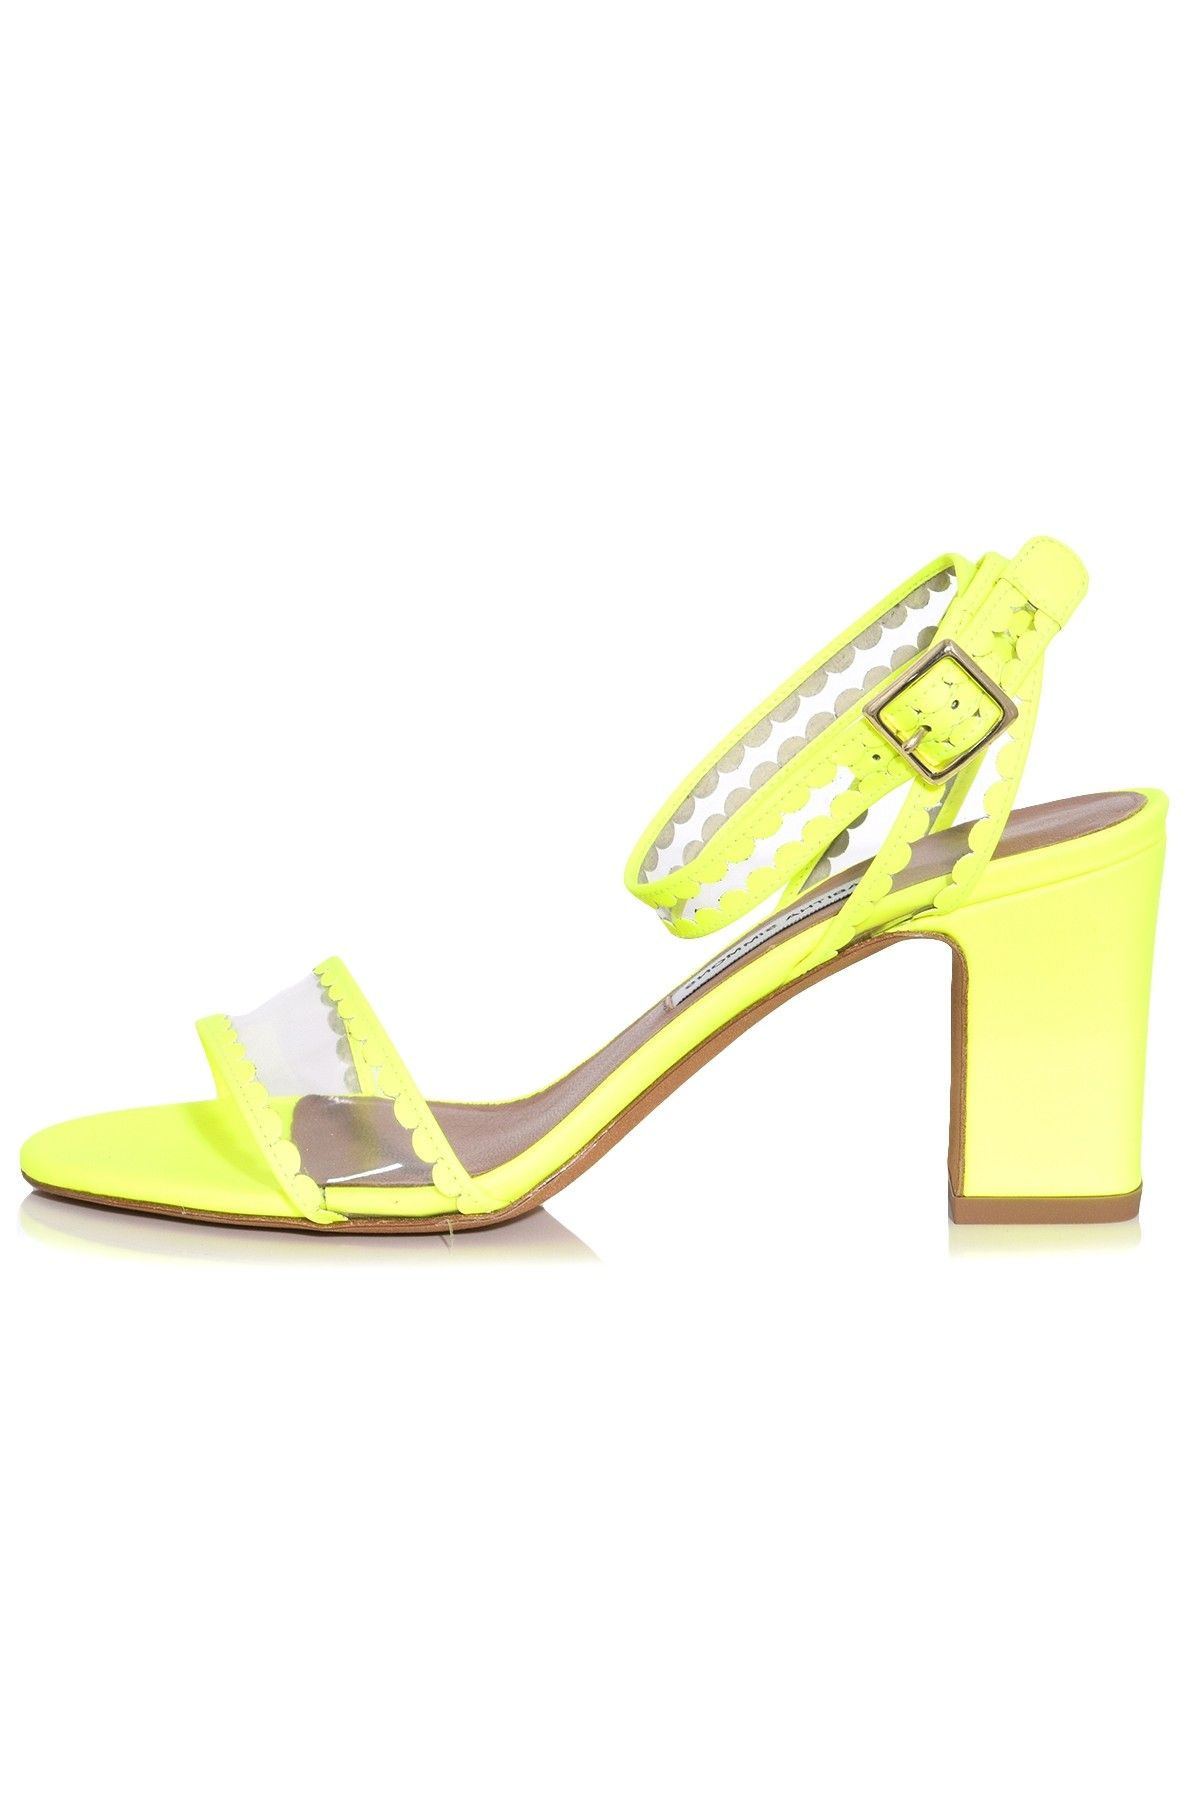 16a7f11d86a Leticia Frill Heel in Clear/Yellow Fluo in 2019 | Hampden Shoes ...